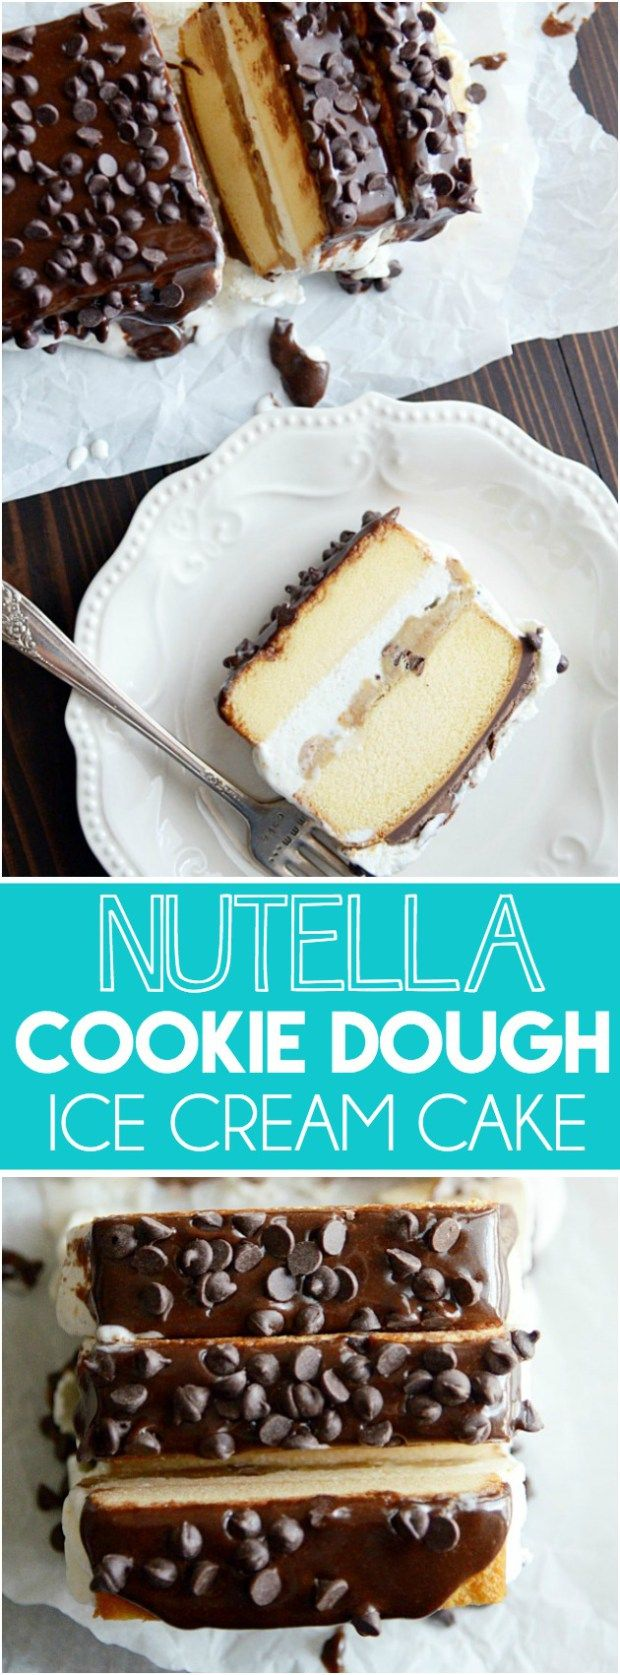 Layers of butter pound cake, vanilla ice cream, chocolate chip cookie dough and…